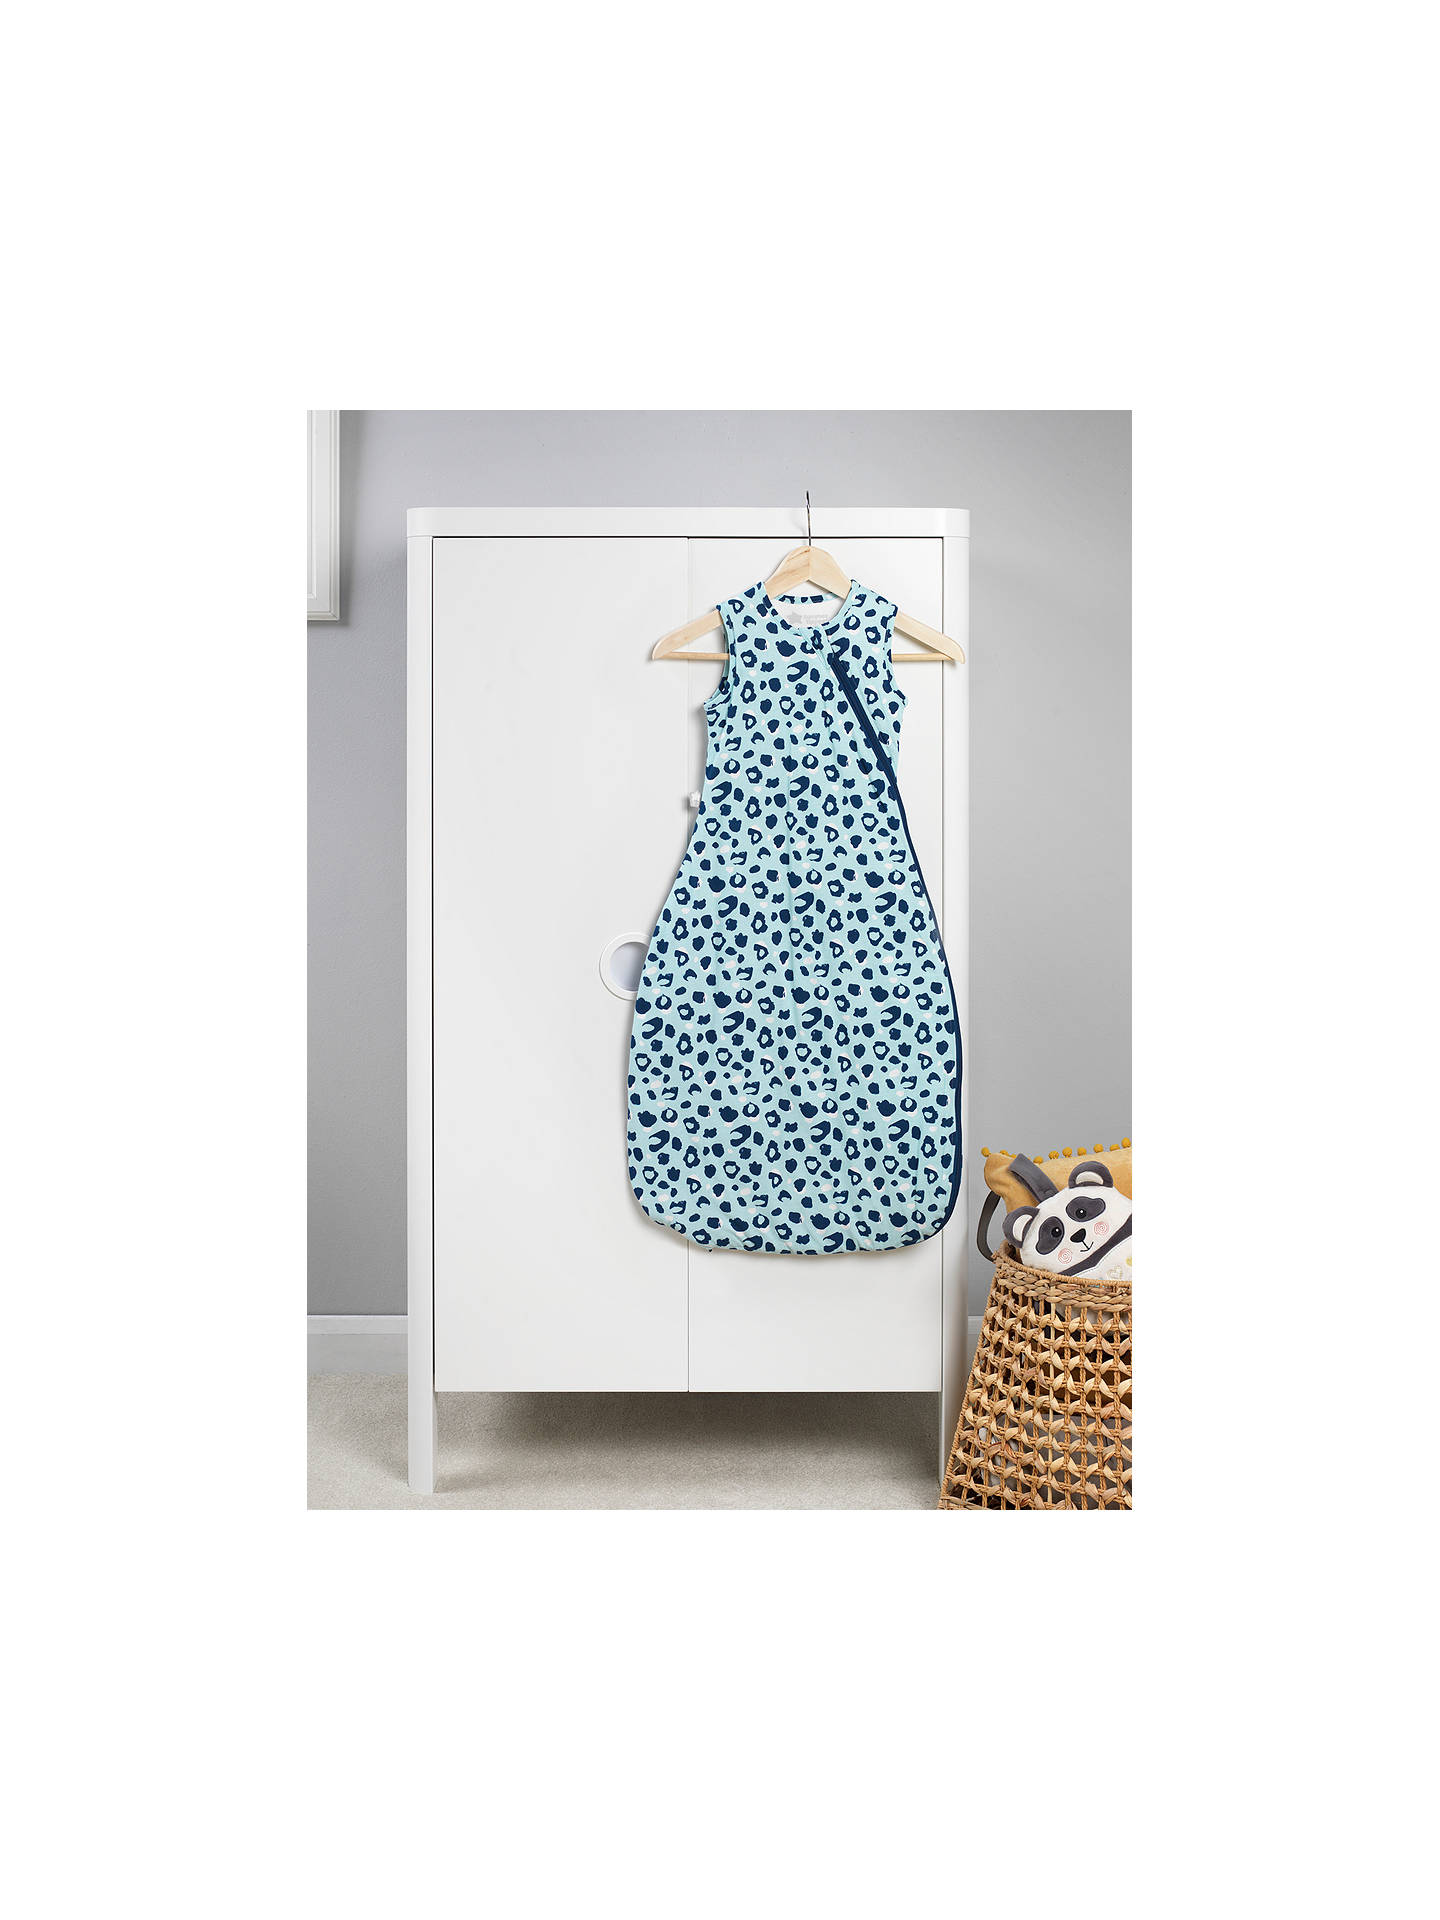 Buy Tommee Tippee The Original Grobag Animal Print Sleep Bag, 2.5 Tog, Blue, 6-18 months Online at johnlewis.com